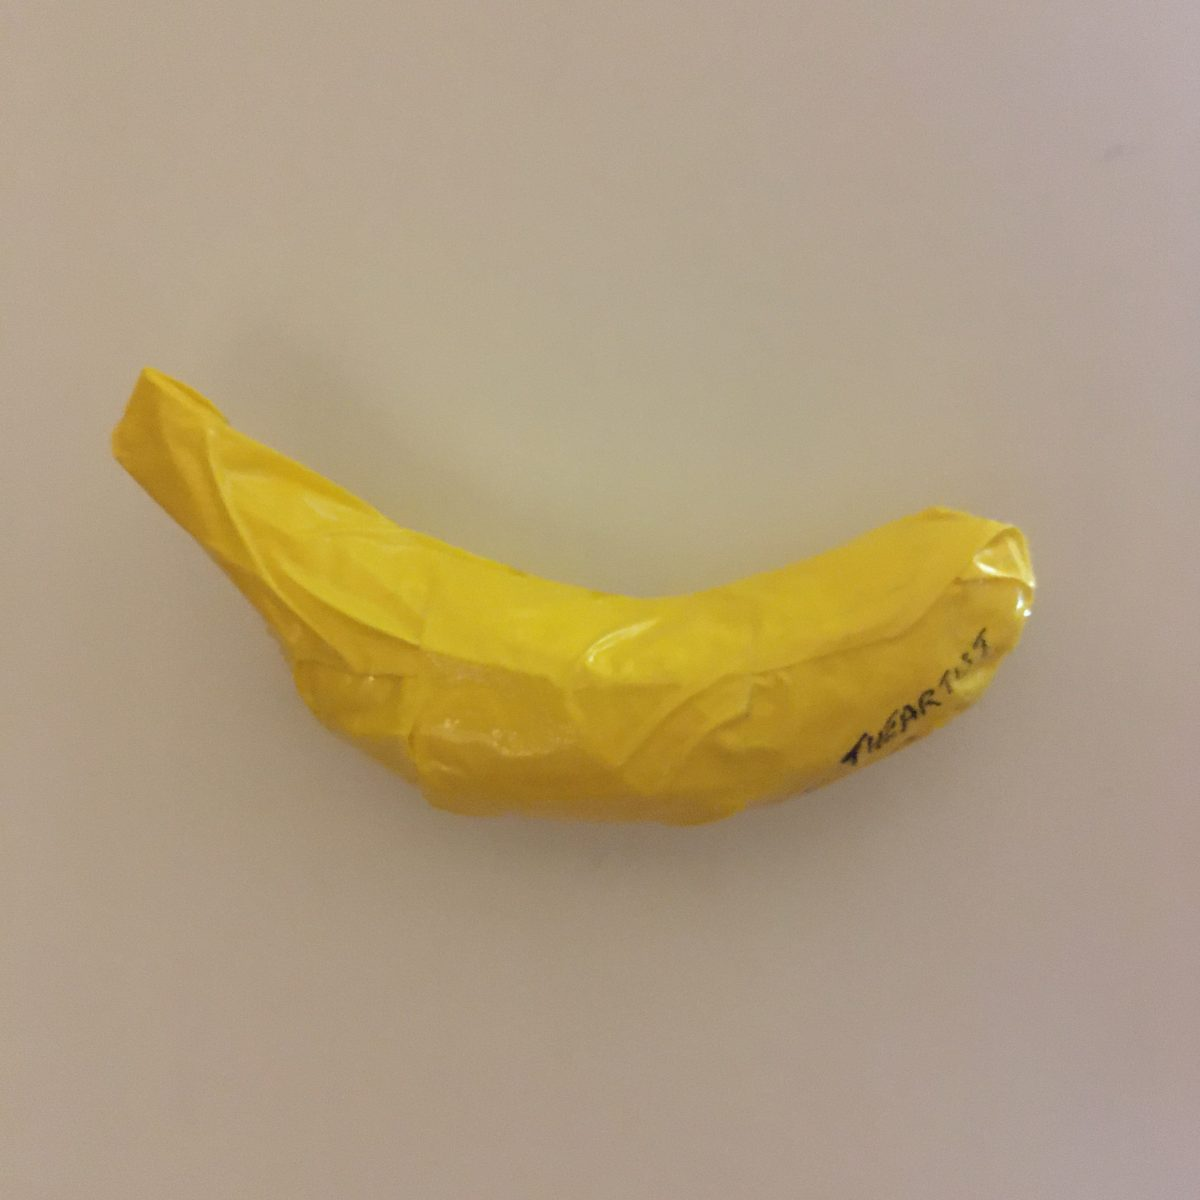 Duct tape banana, politape, 145x80mm